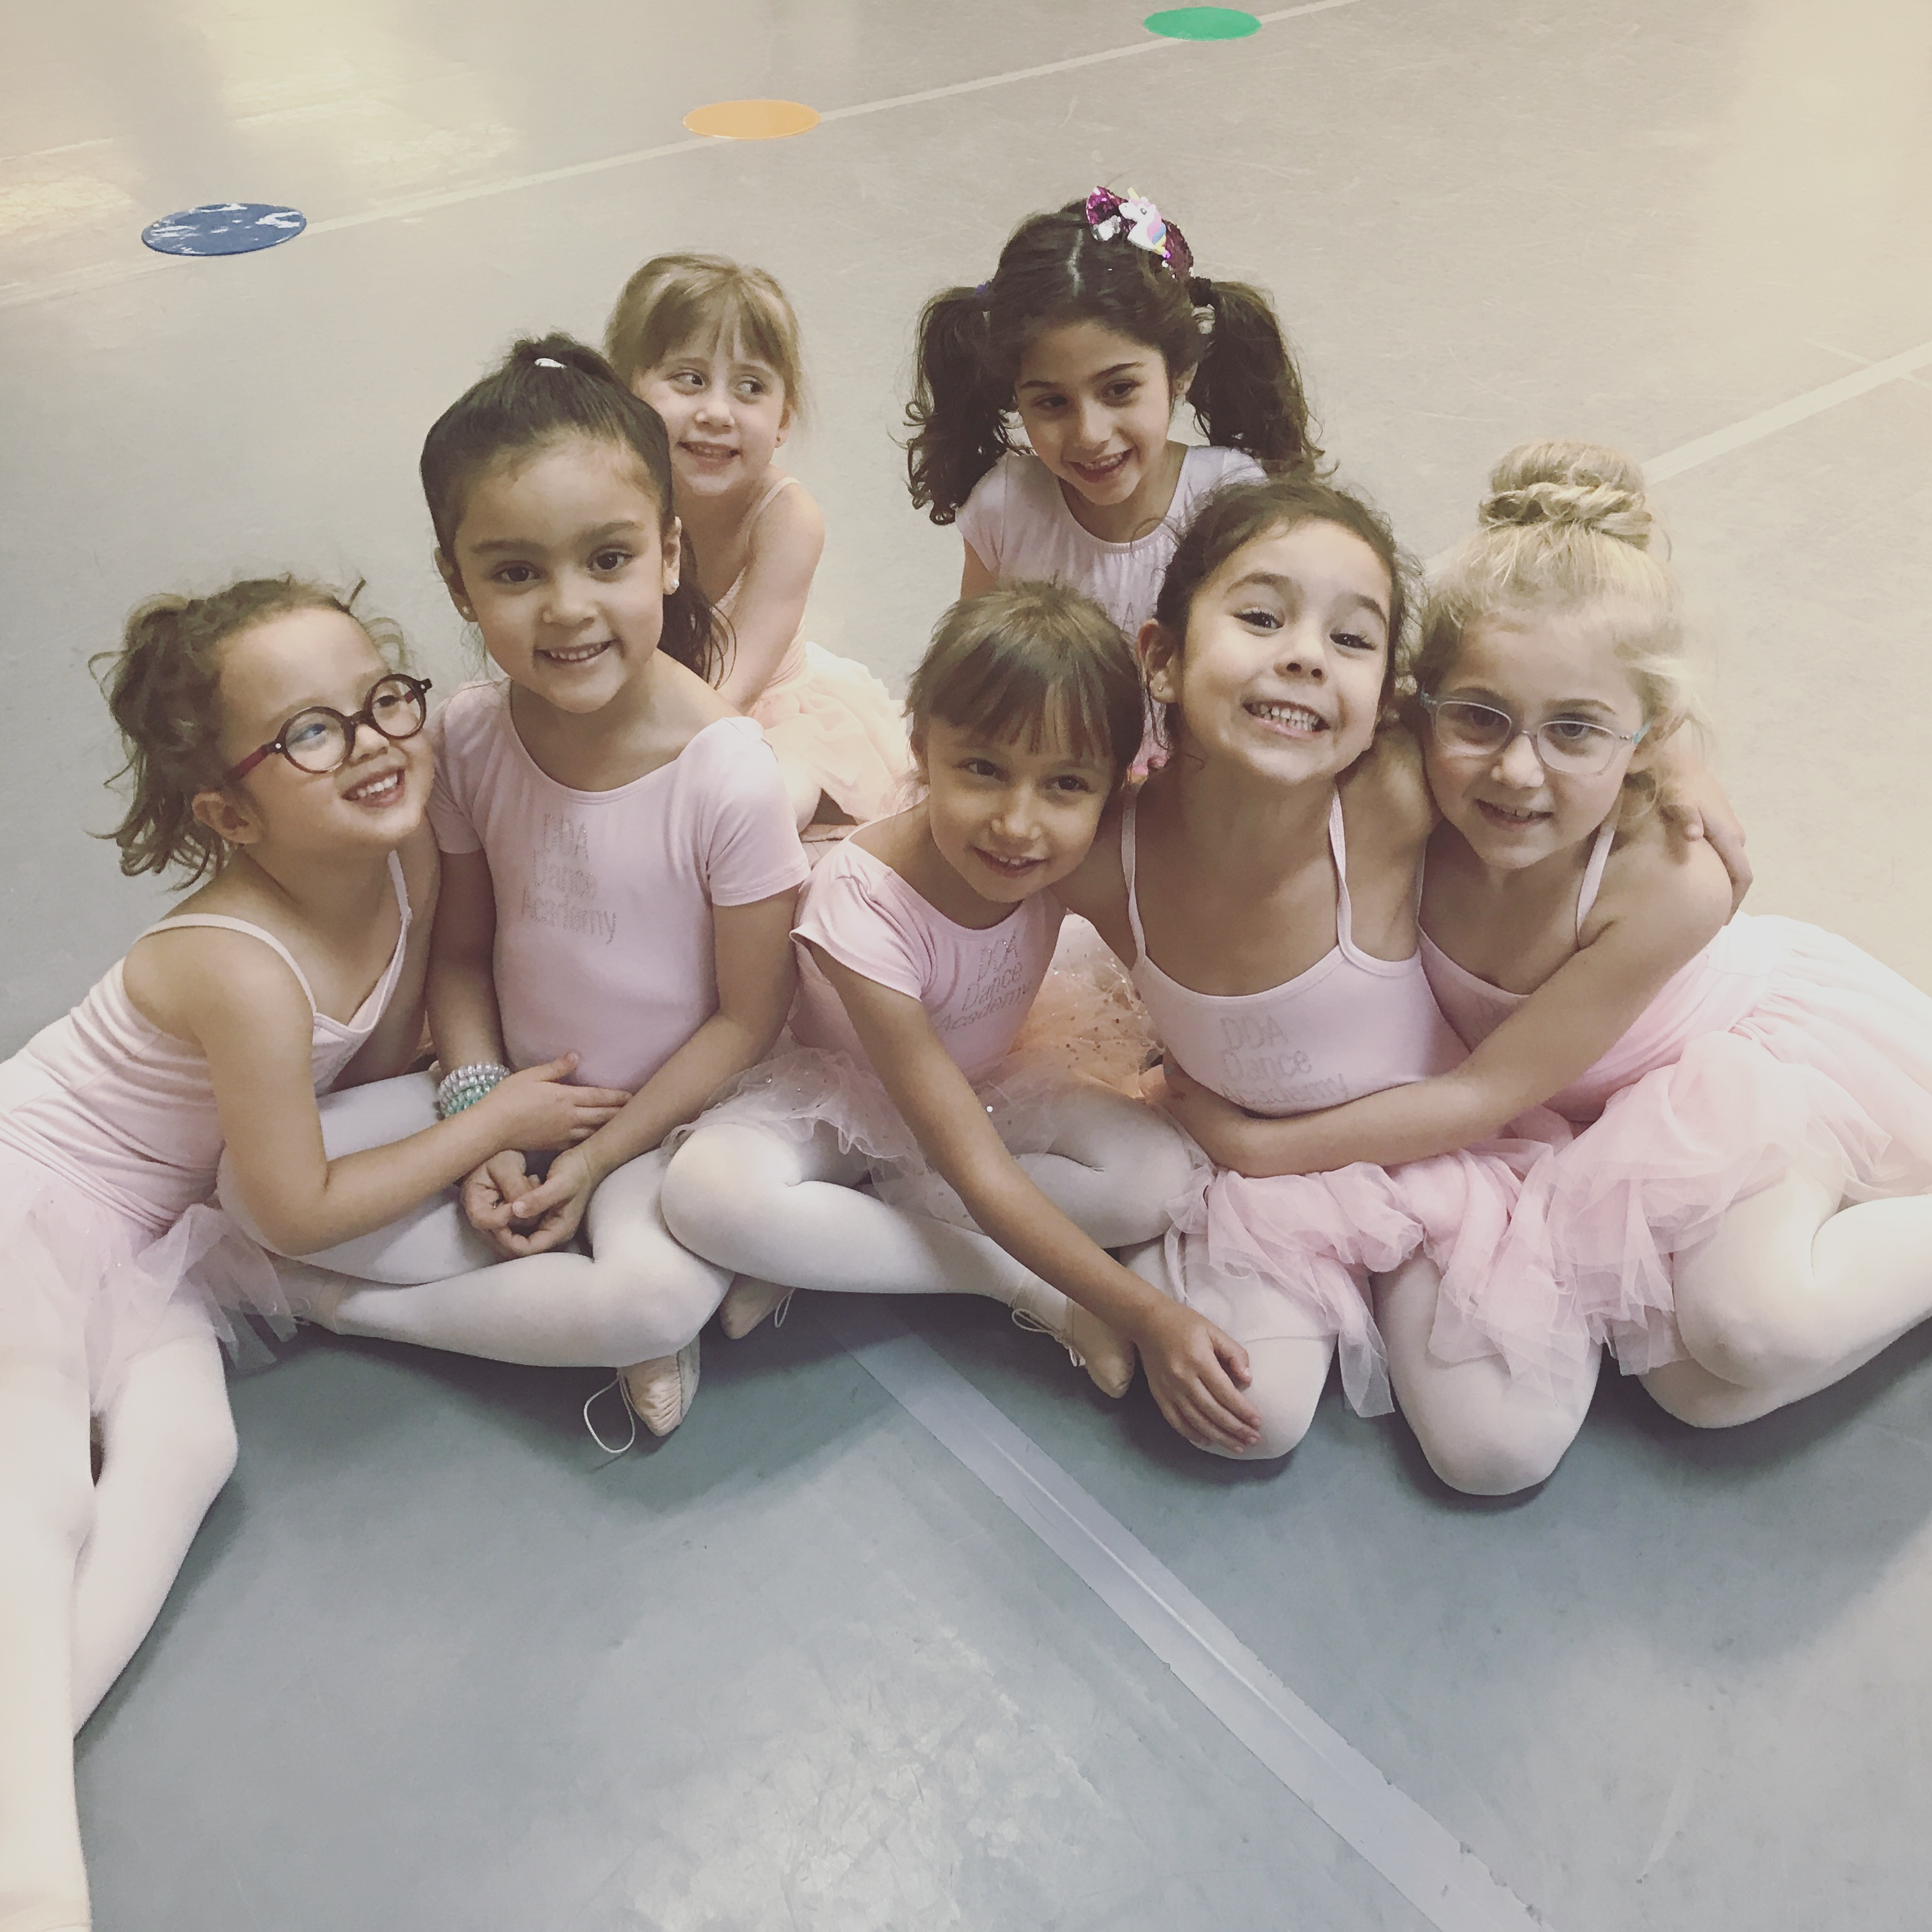 New Jersey's Top Rated Local® Dance Schools & Studios Award Winner: DDA Dance Academy